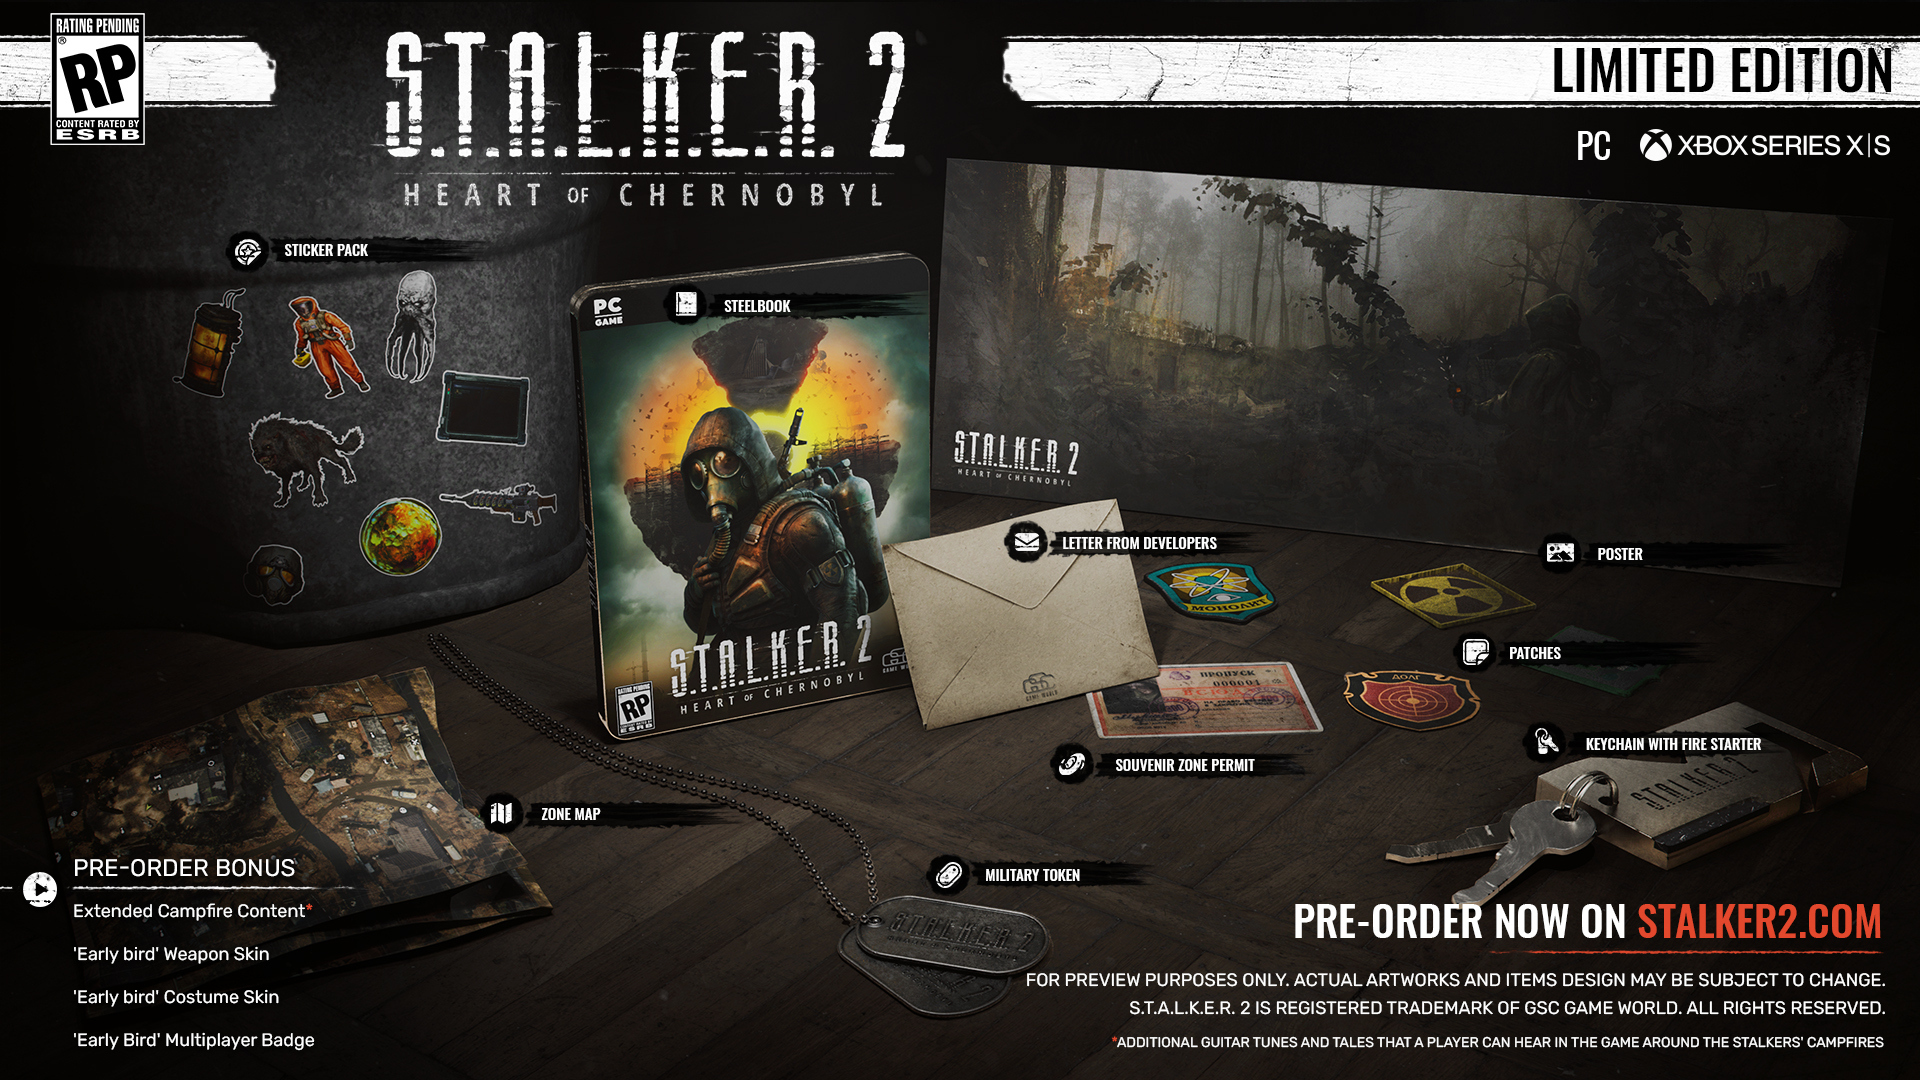 S.T.A.L.K.E.R. 2 Standard Edition & Limited Edition